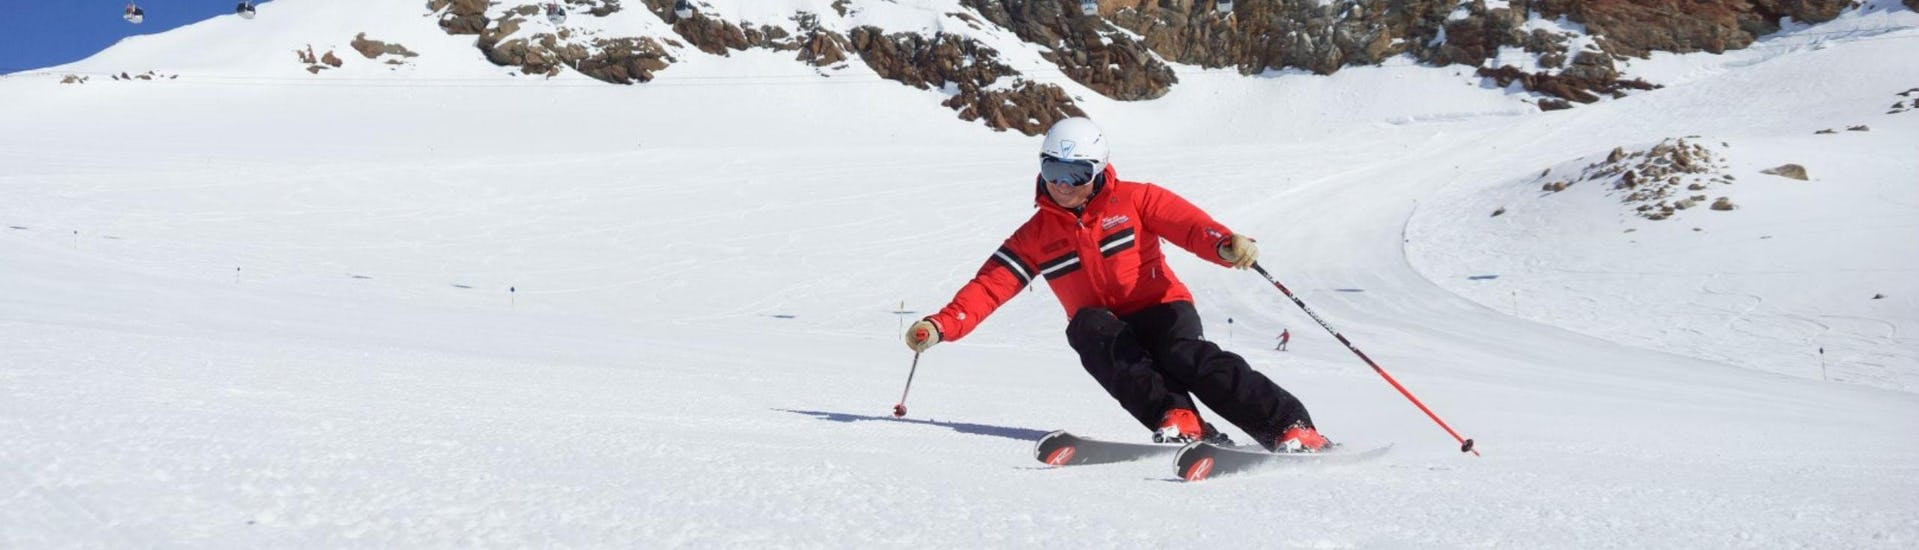 A ski instructor from the ski school Ski- und Snowboardschule Vacancia is demonstrating the correct skiing technique during one of the Private Ski Lessons for Adults - All Levels.